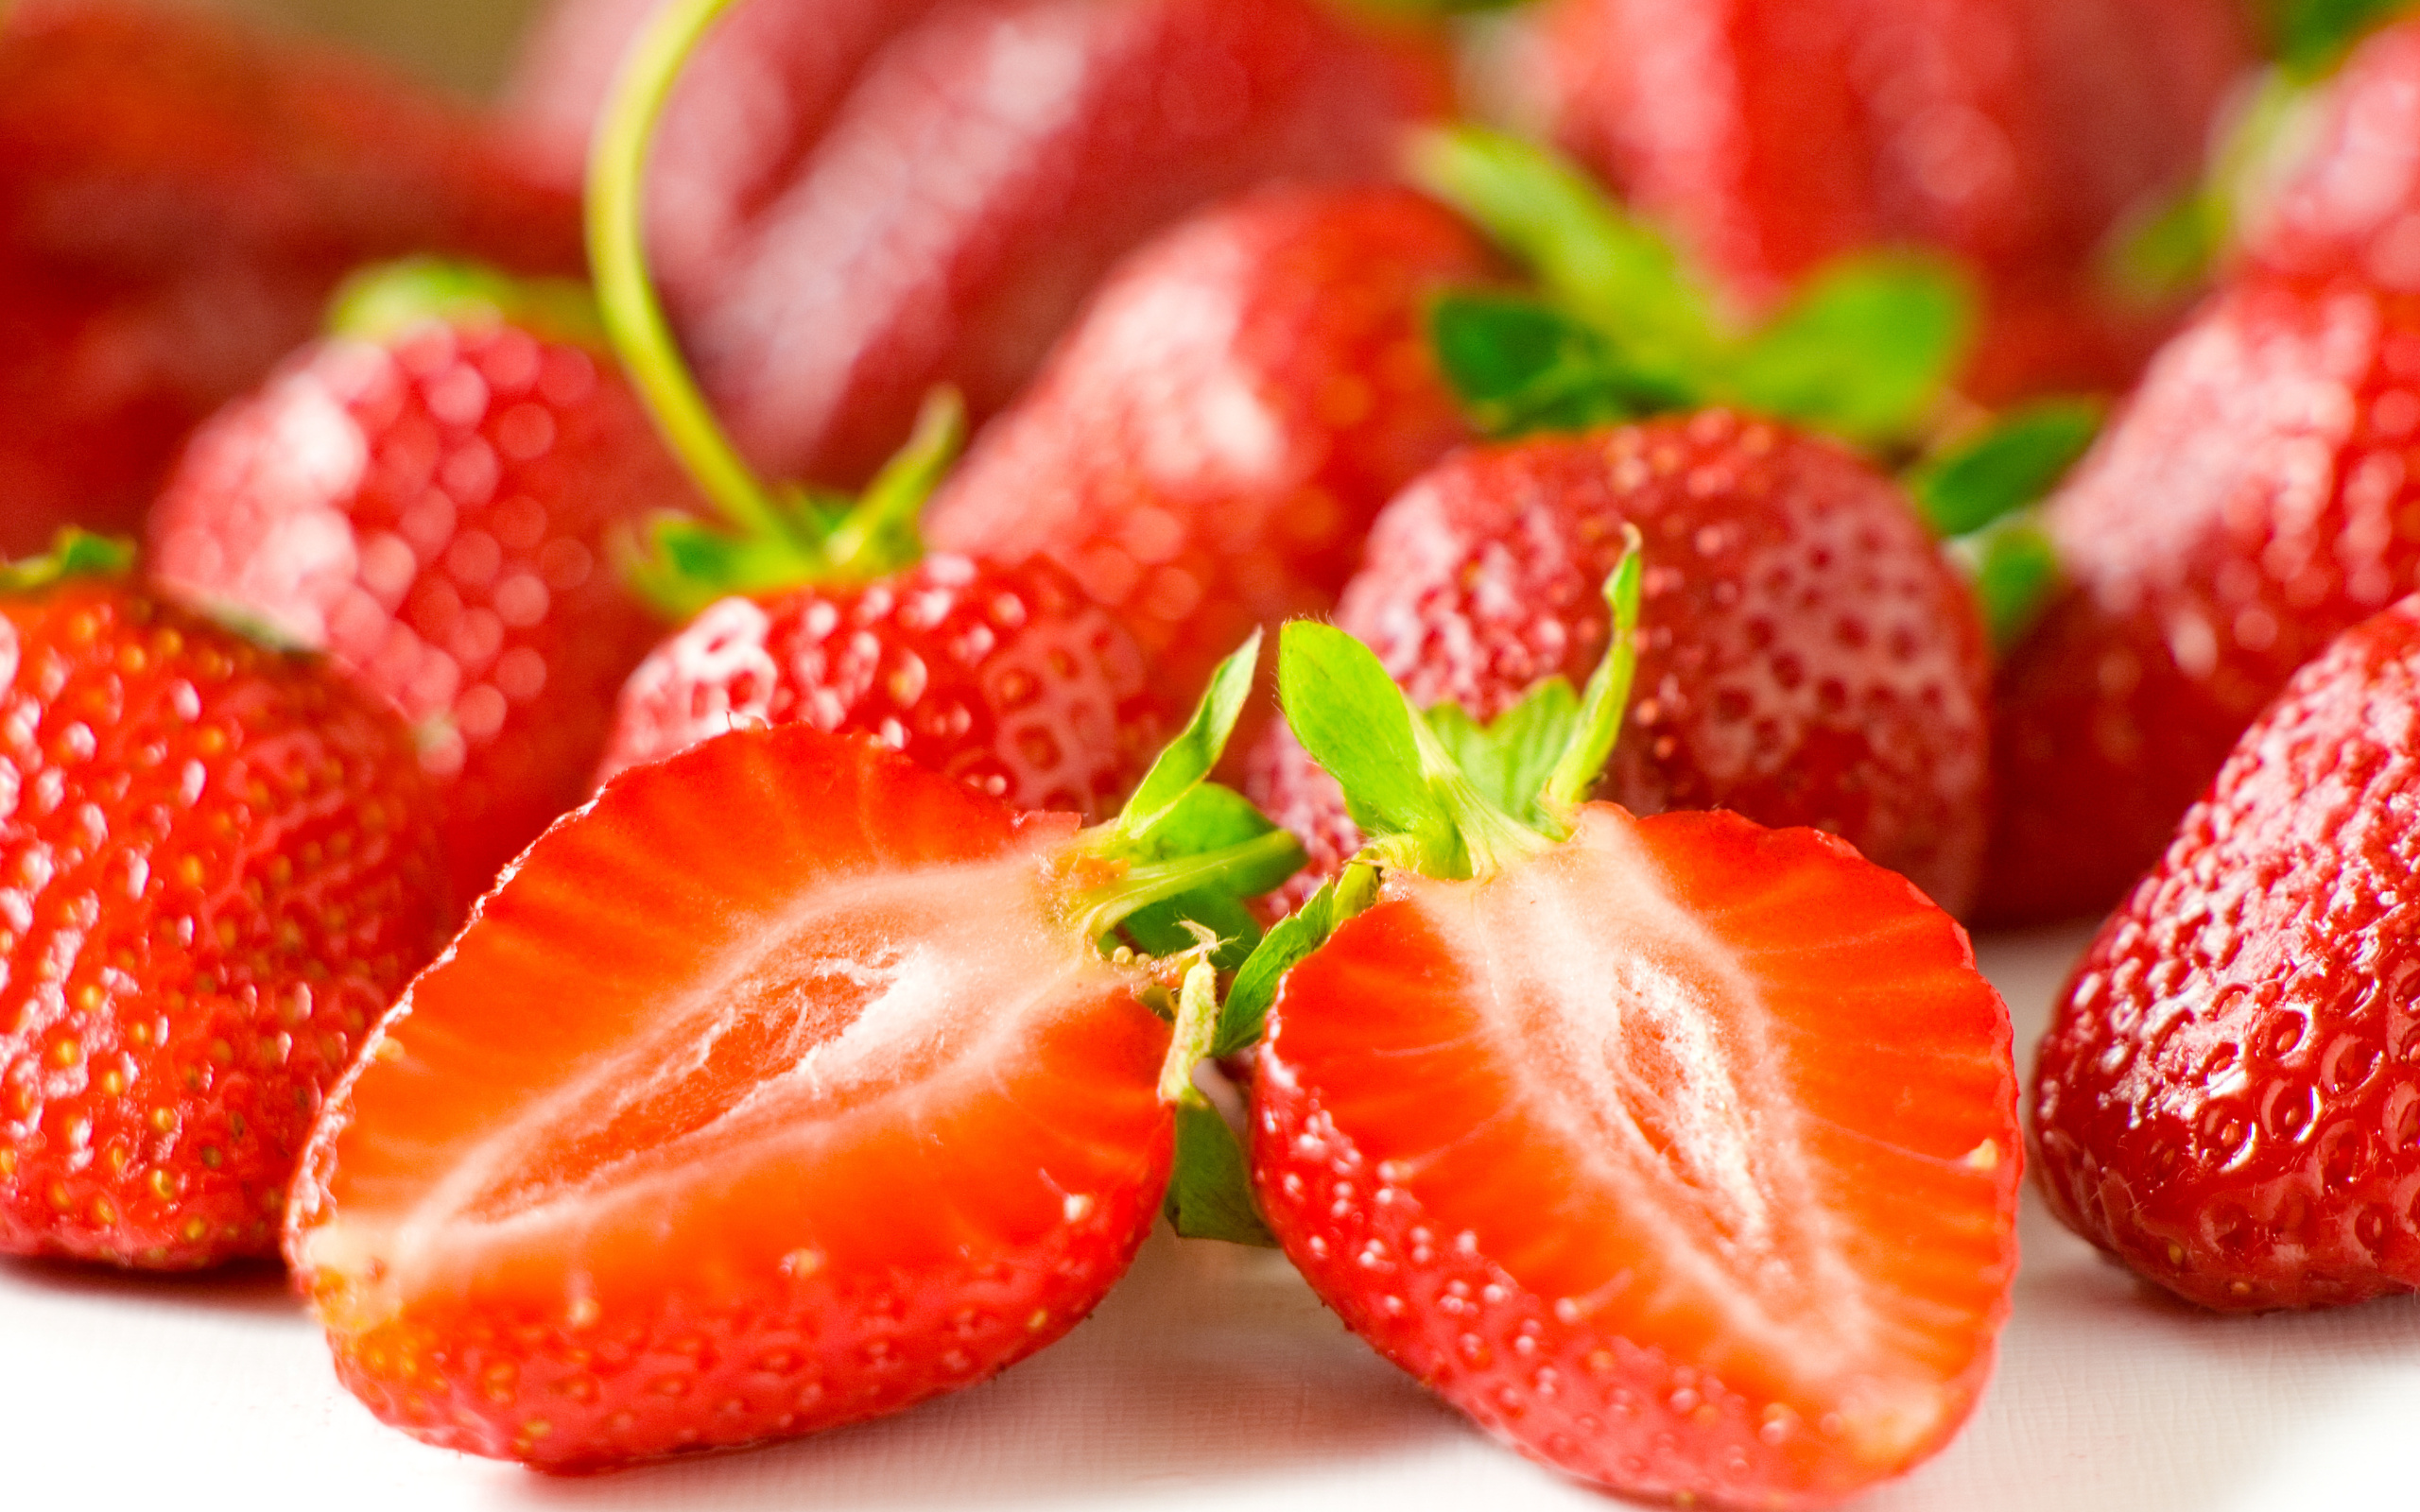 Strawberry Wallpapers Pictures Images